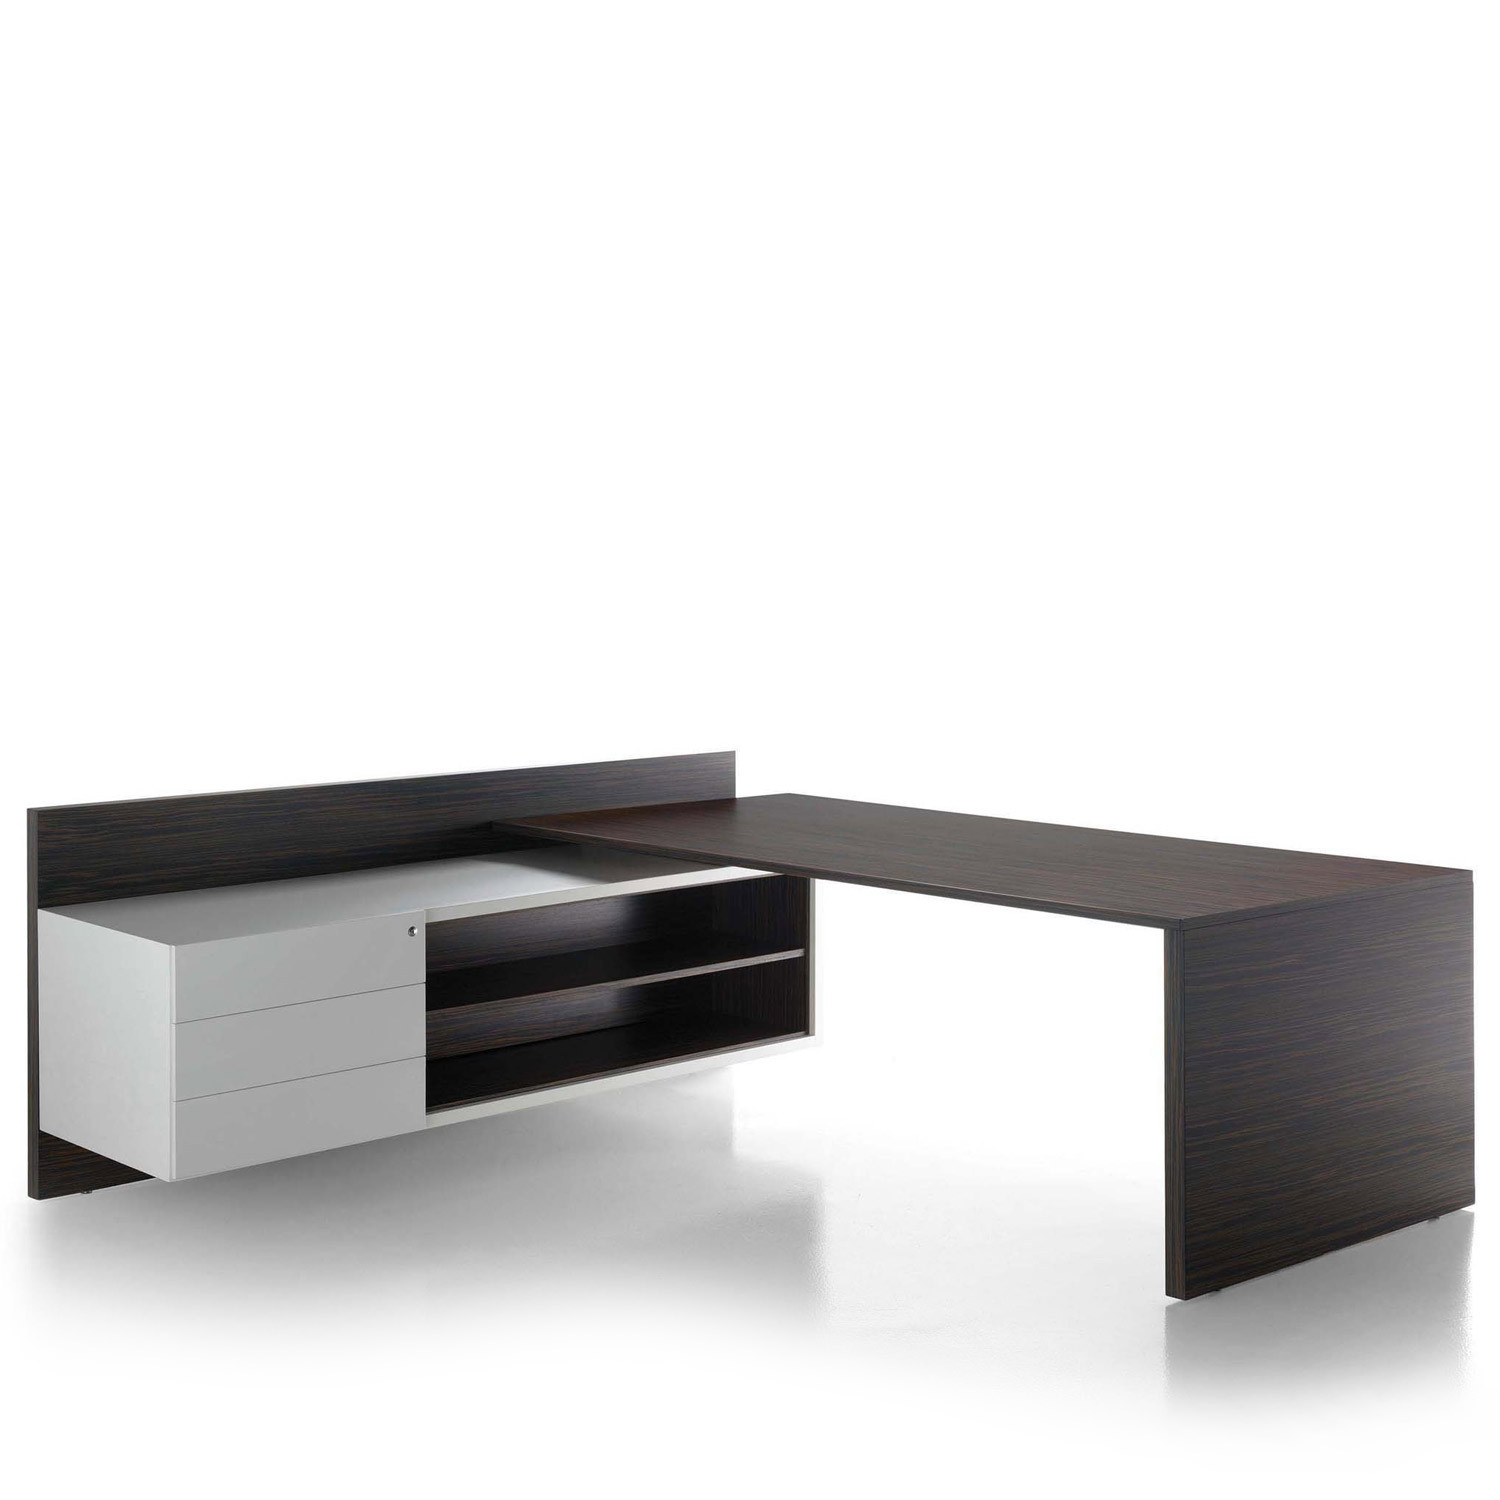 Vektor Executive Desk WIth Suspended Storage